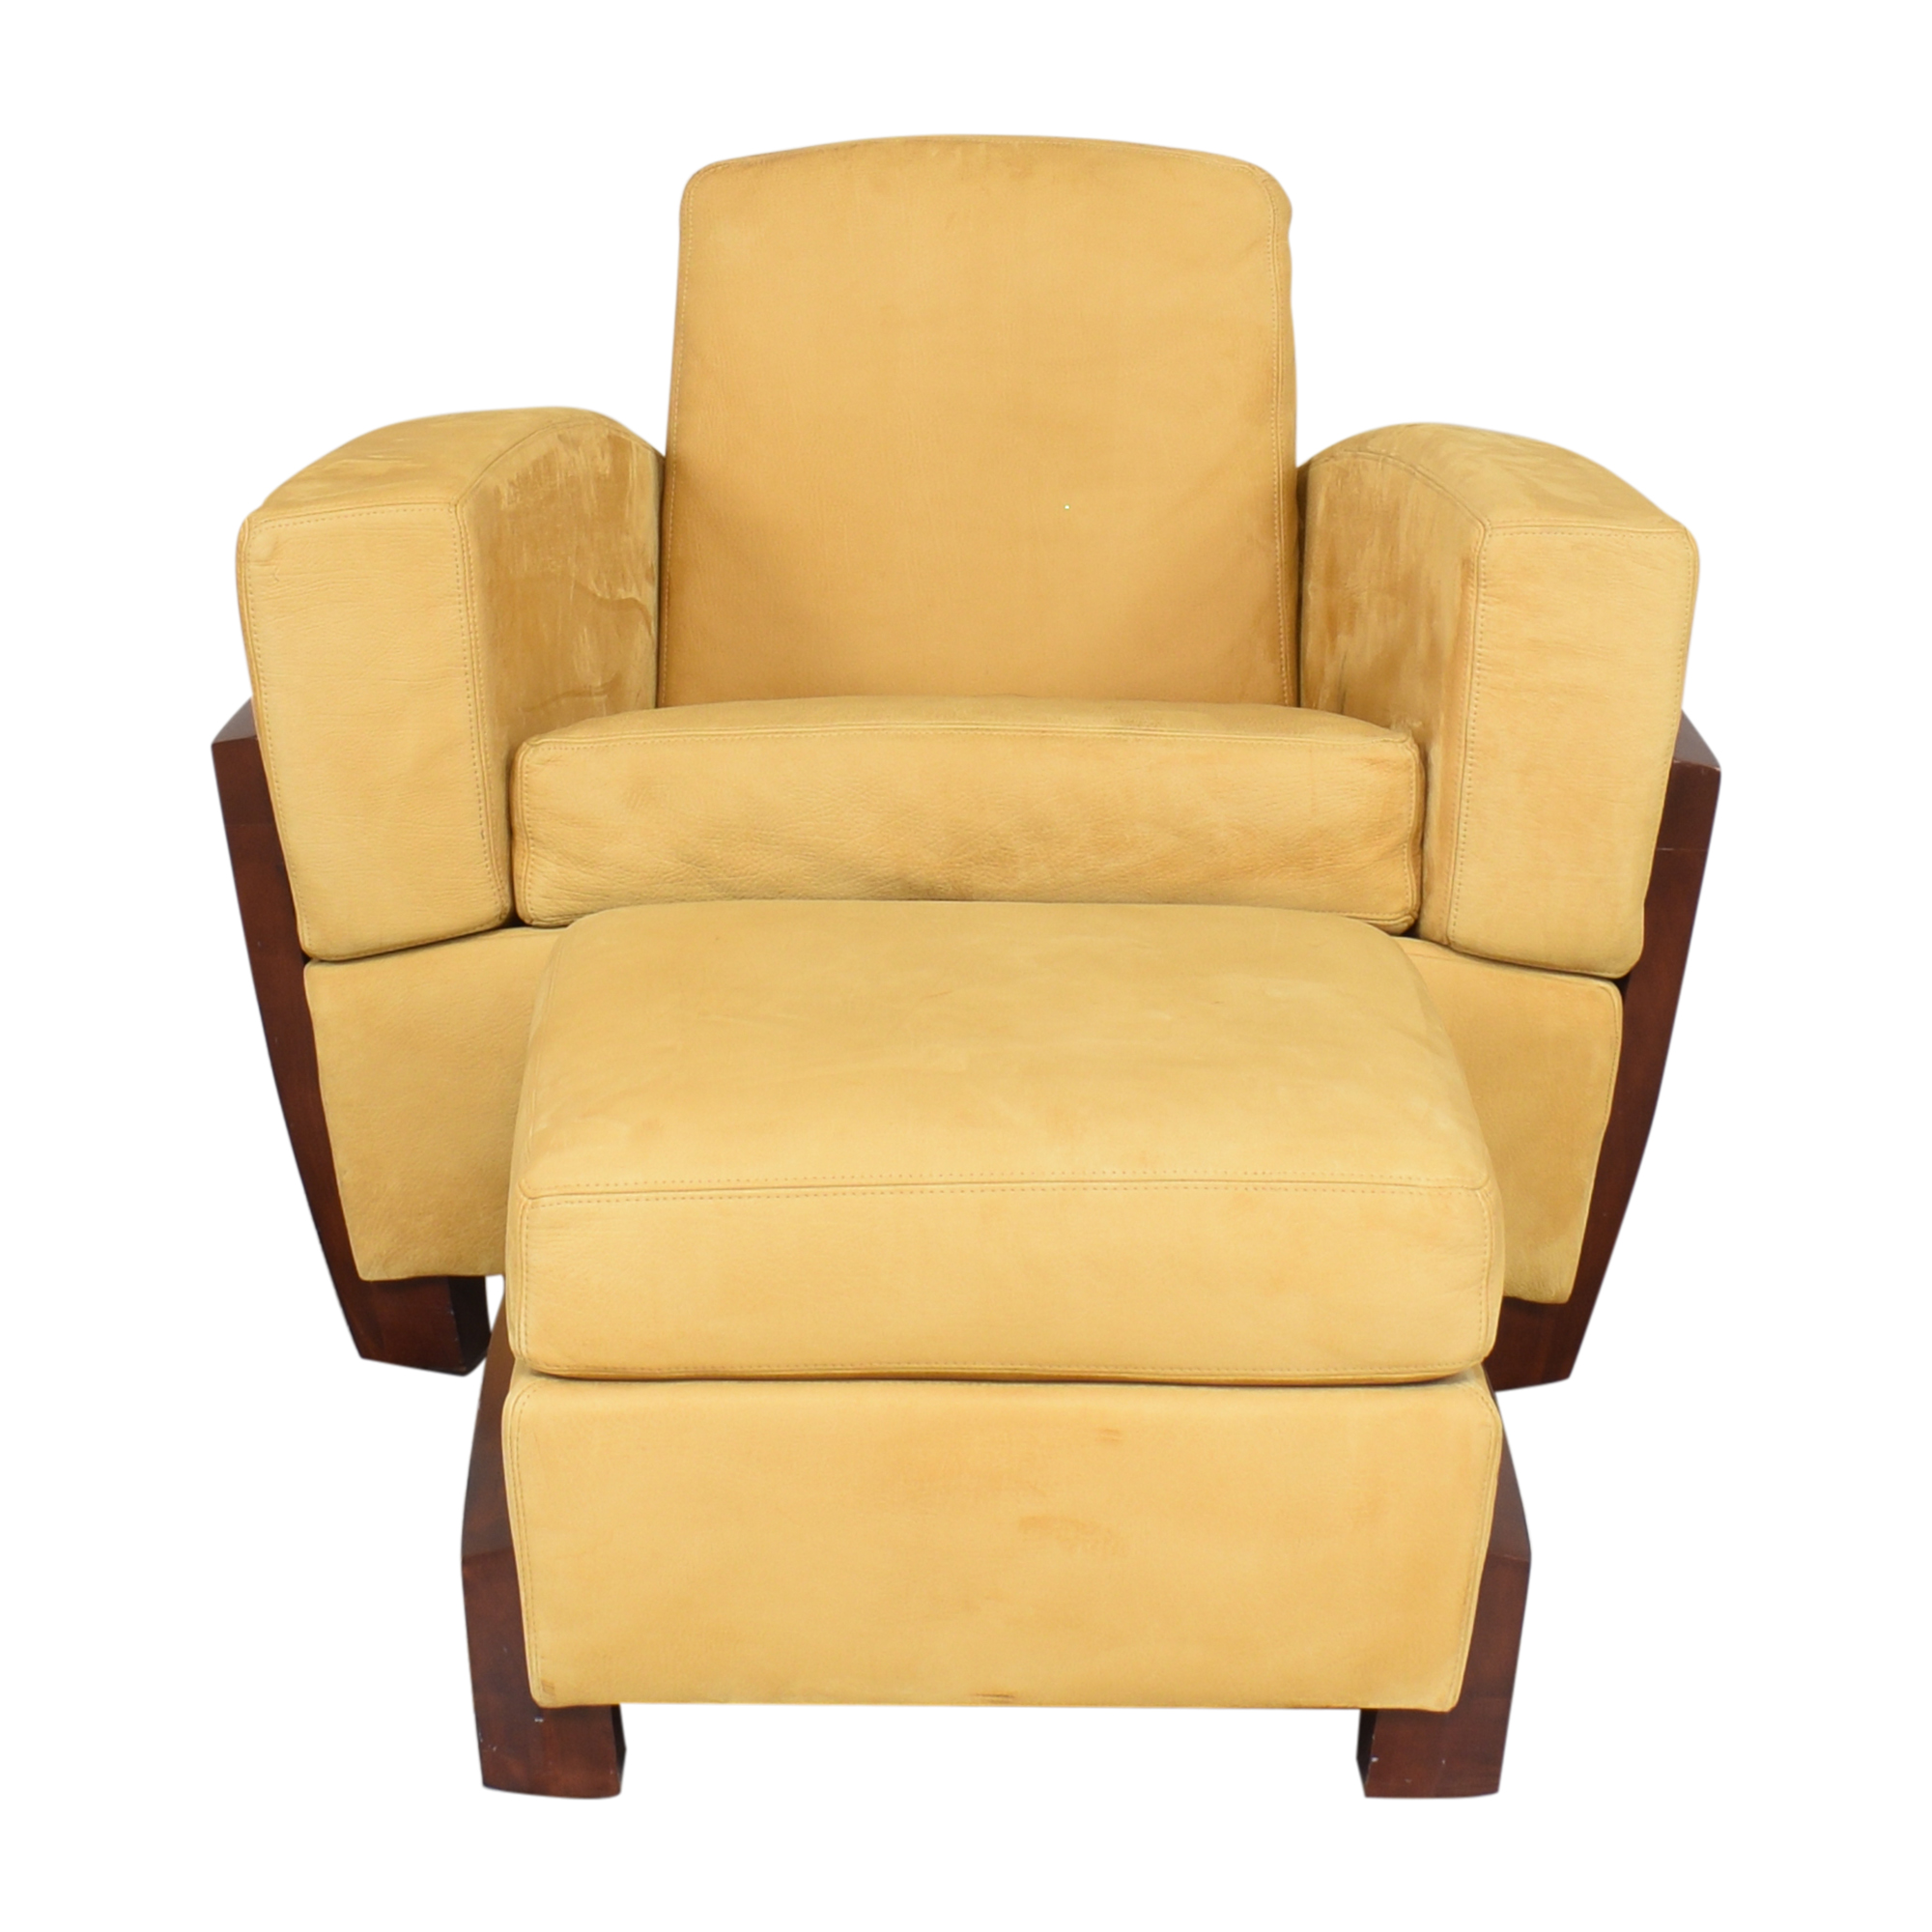 buy  Art Deco Style Club Chair and Ottoman online